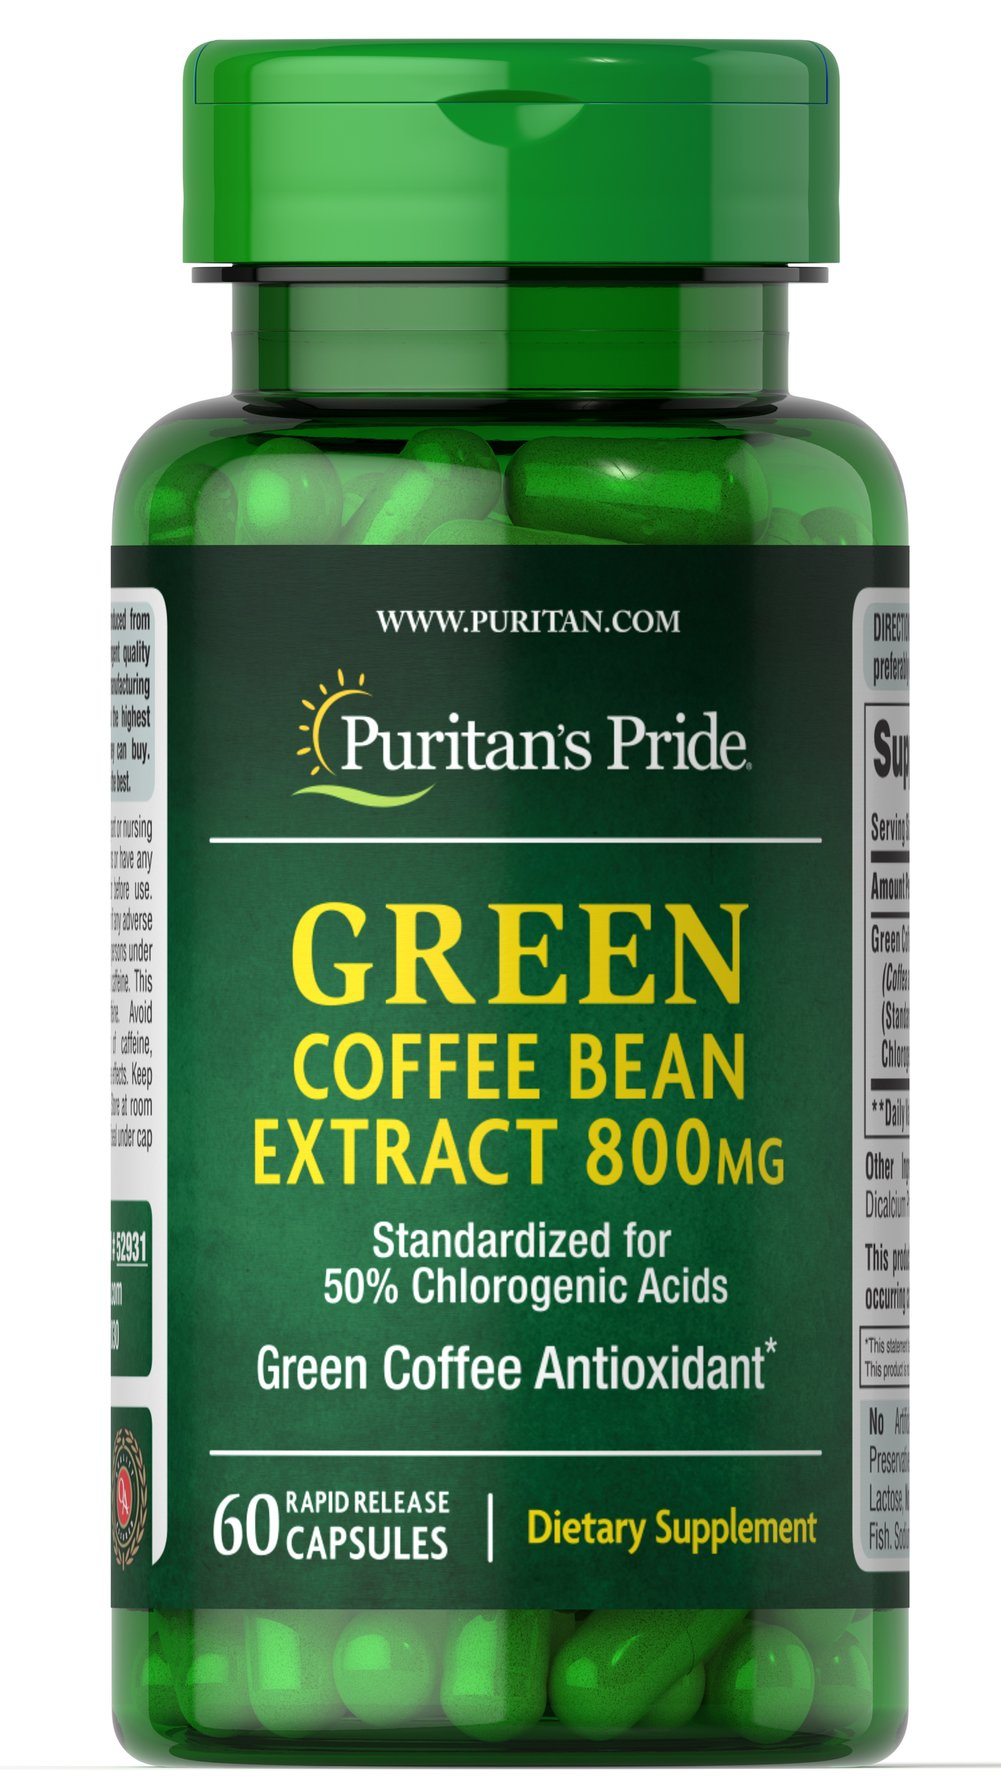 Green Coffee Bean Extract 800 mg Green Coffee Bean extract is made from coffee beans that are not roasted. This unique extract provides 45 percent chlorogenic acids. Green coffee is a major source of chlorogenic acids in nature and contains antioxidant properties.** Includes 60 rapid release capsules. 60 Capsules 800 mg $33.99